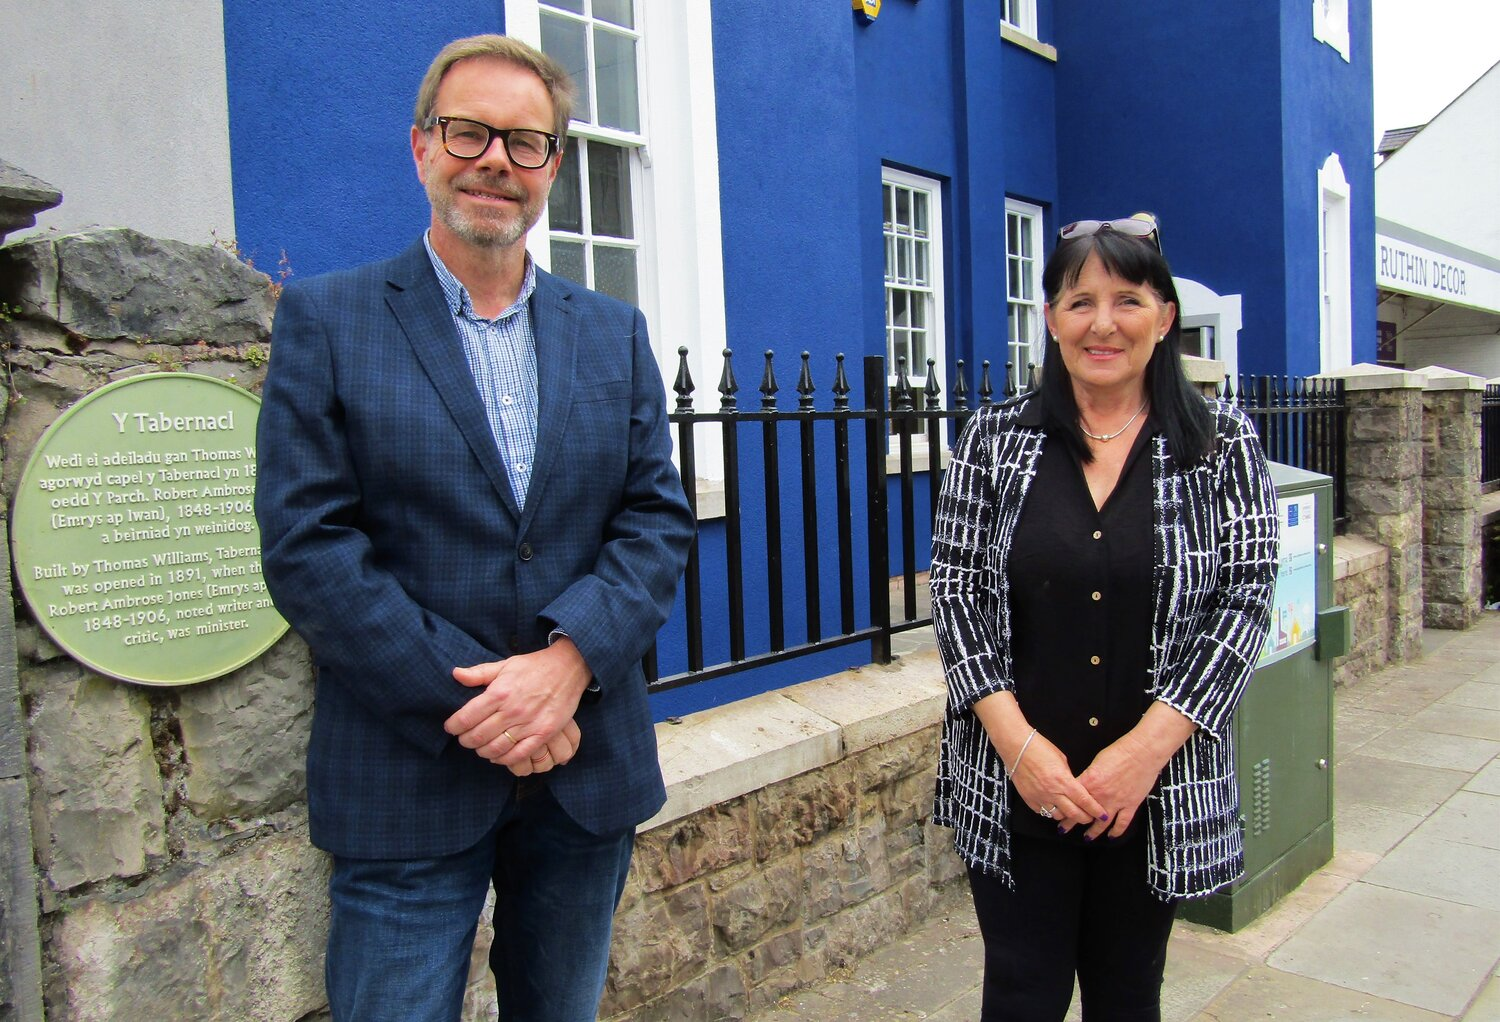 New vision for community charity as £50,000 revamp to Ruthin landmark unveiled